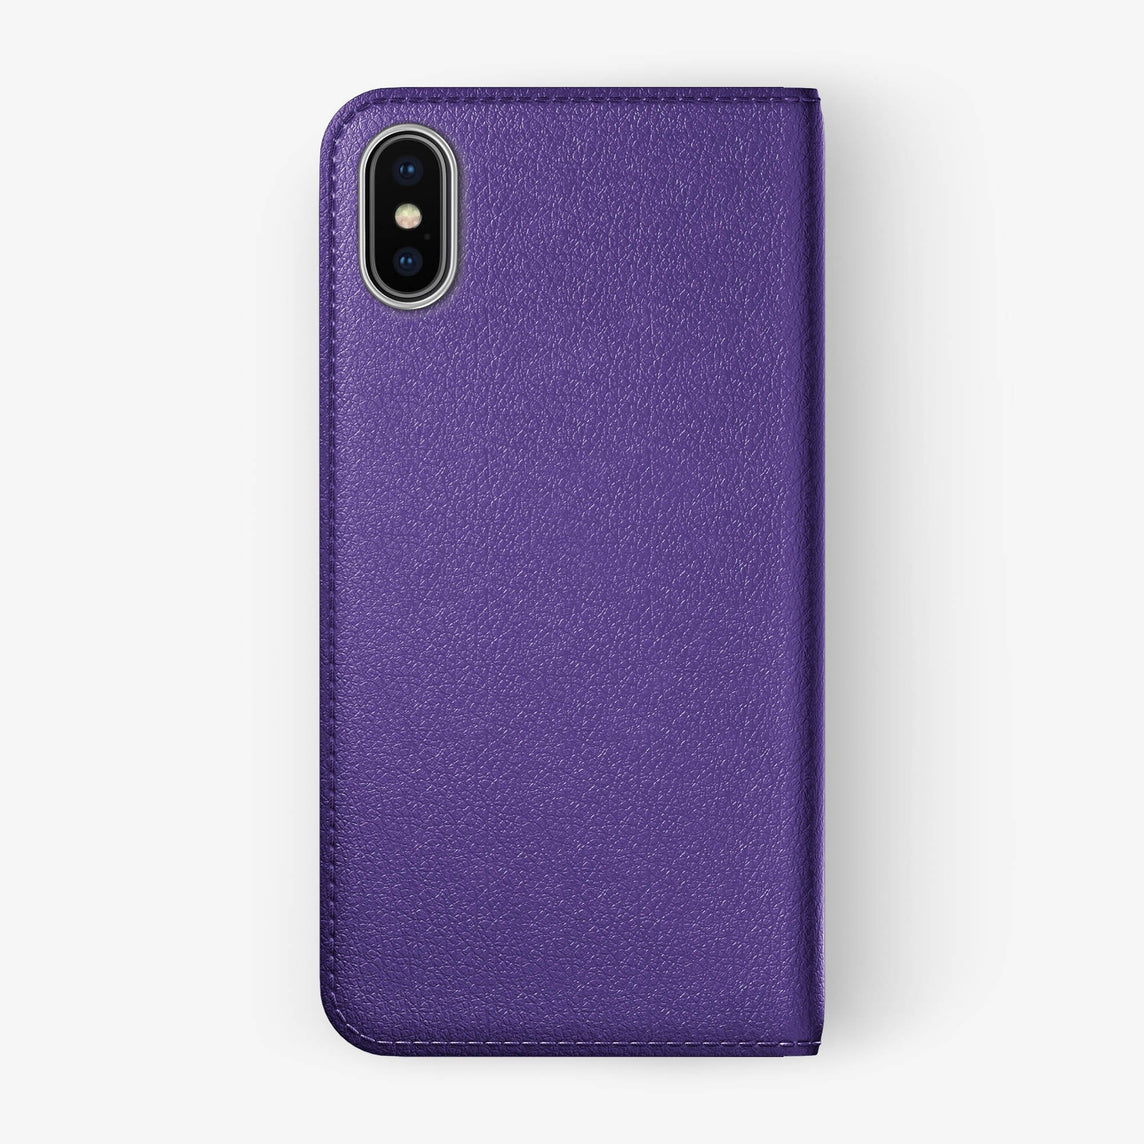 Calfskin Folio Case iPhone X/Xs | Violet - Stainless Steel without-personalization